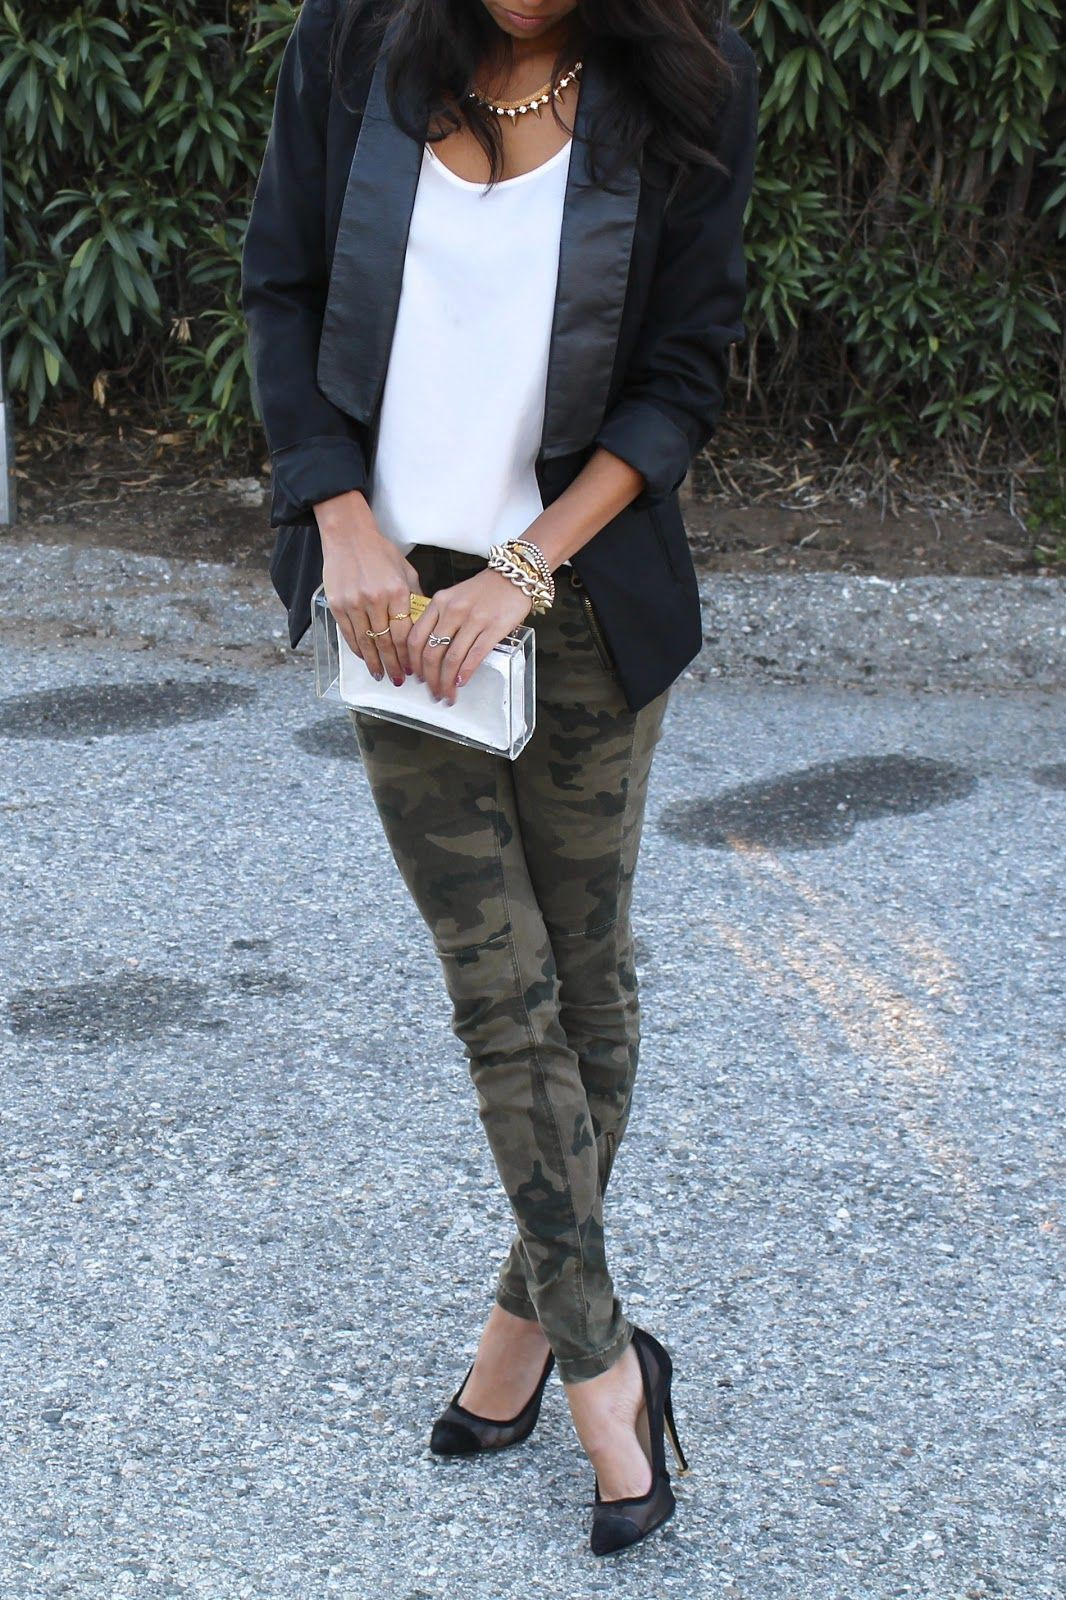 Brown and black colour outfit with trousers, jacket, blazer